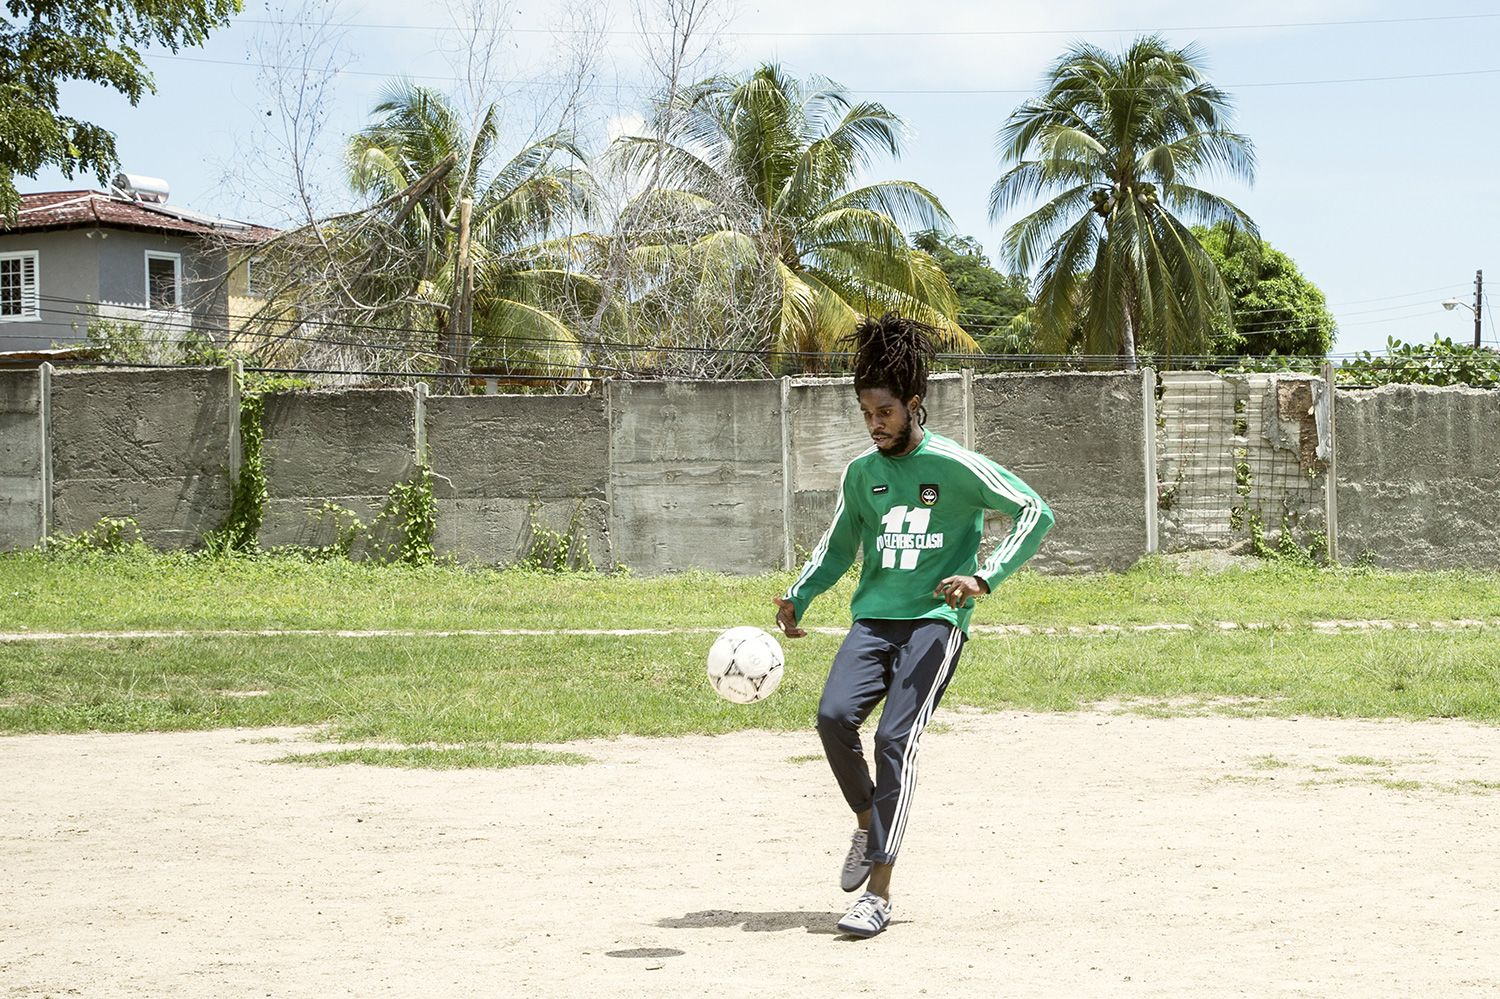 For SS17, adidas SPEZIAL explores the deep connection between British and Jamaican subcultures, with a lookbook and video starring reggae artist Chronixx.